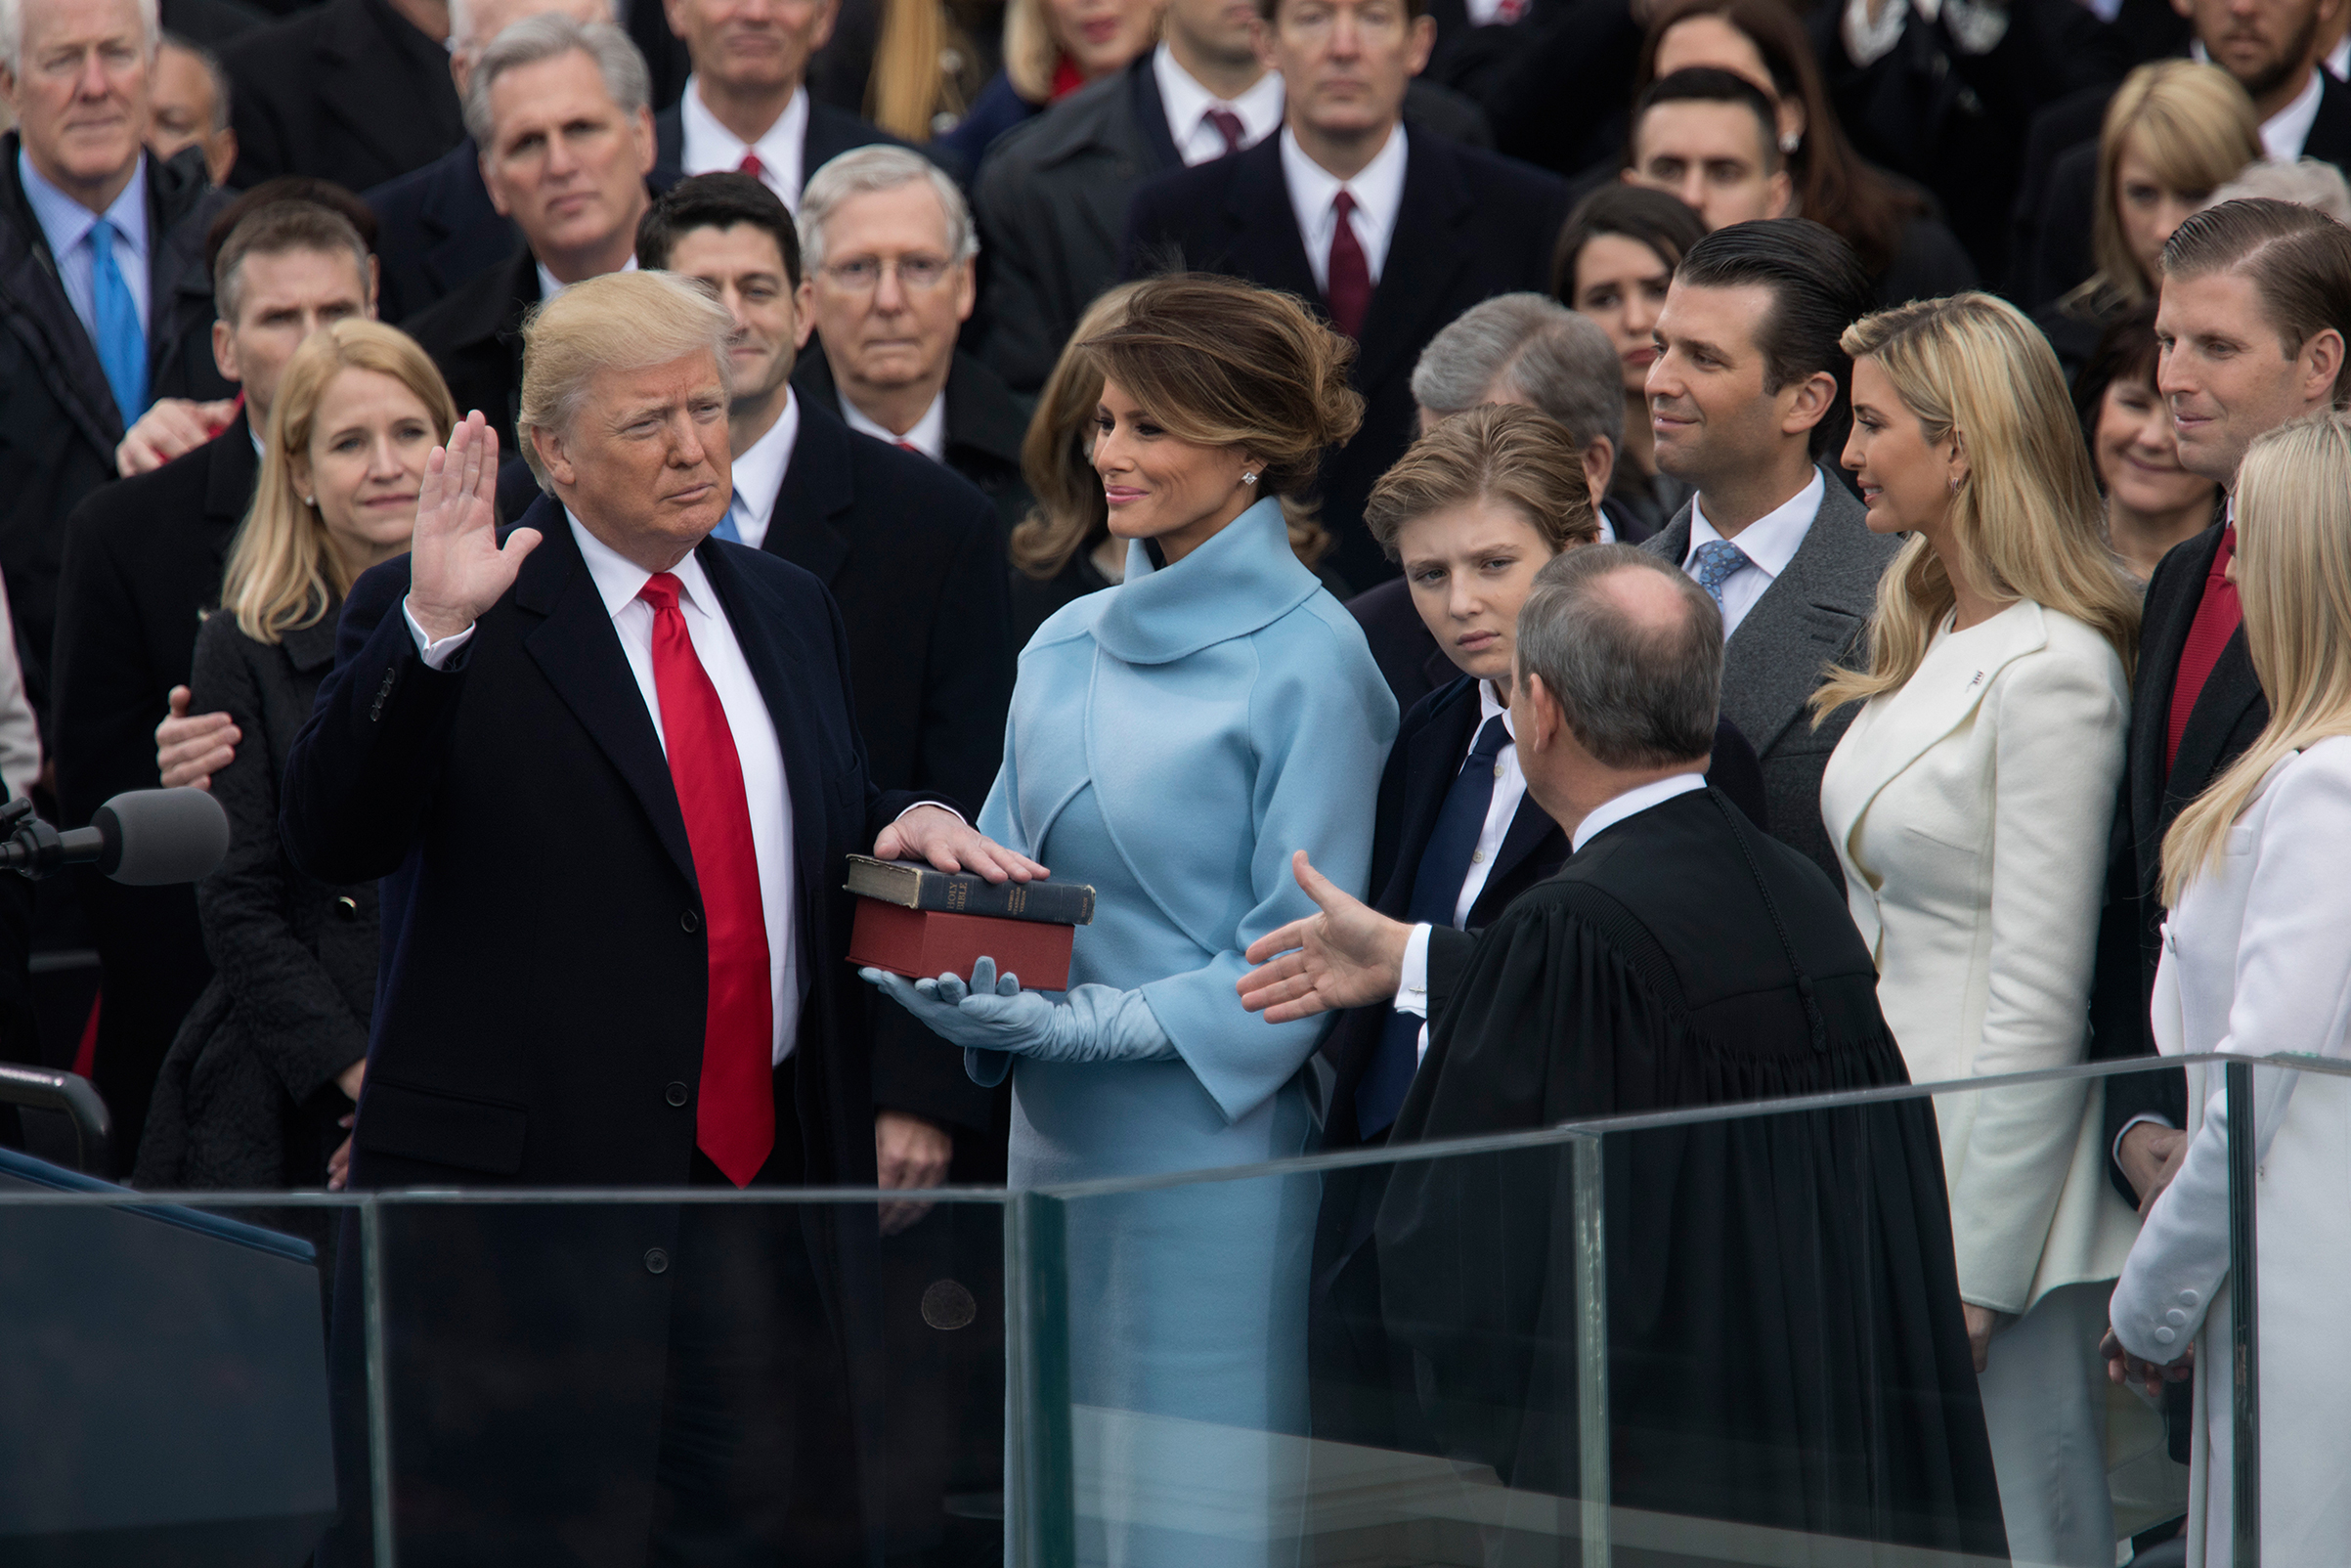 Chief Justice John Roberts administers the oath of office to Trump in 2017. (Christopher Morris)